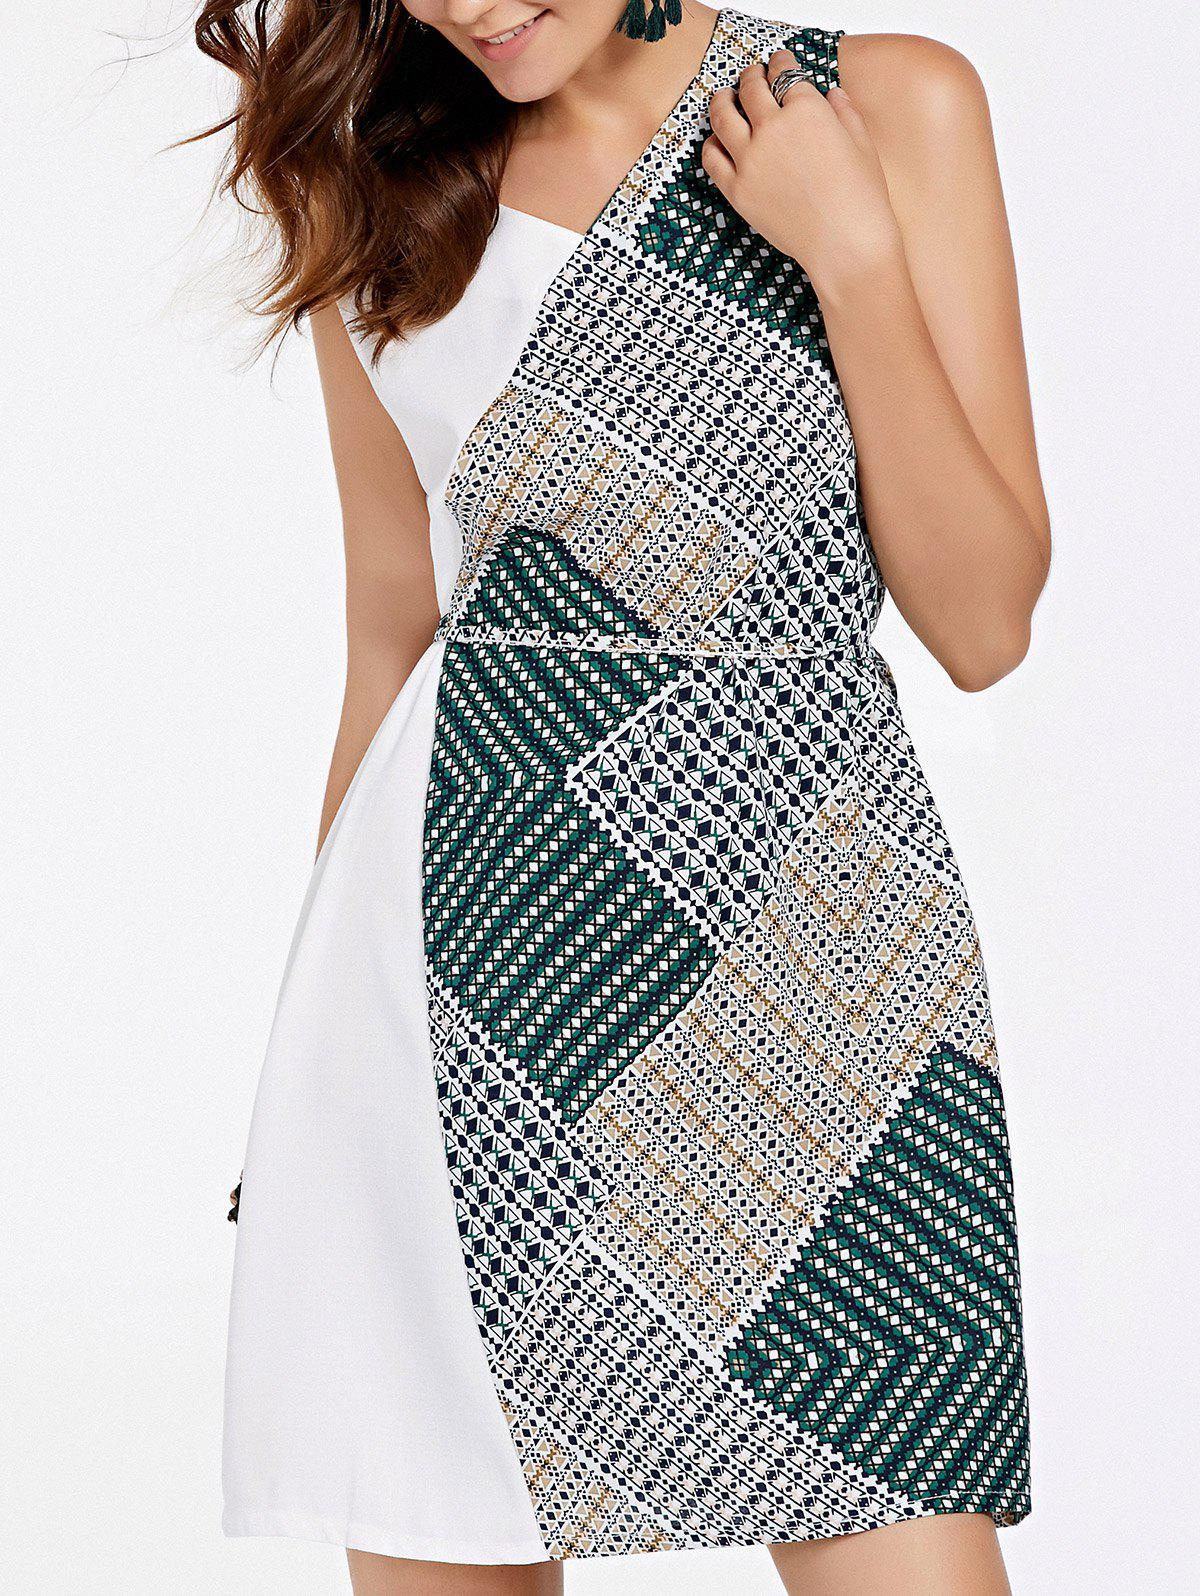 Stylish Women's Sleeveless Patchwork Design Self-Tie Dress - GREEN ONE SIZE(FIT SIZE XS TO M)